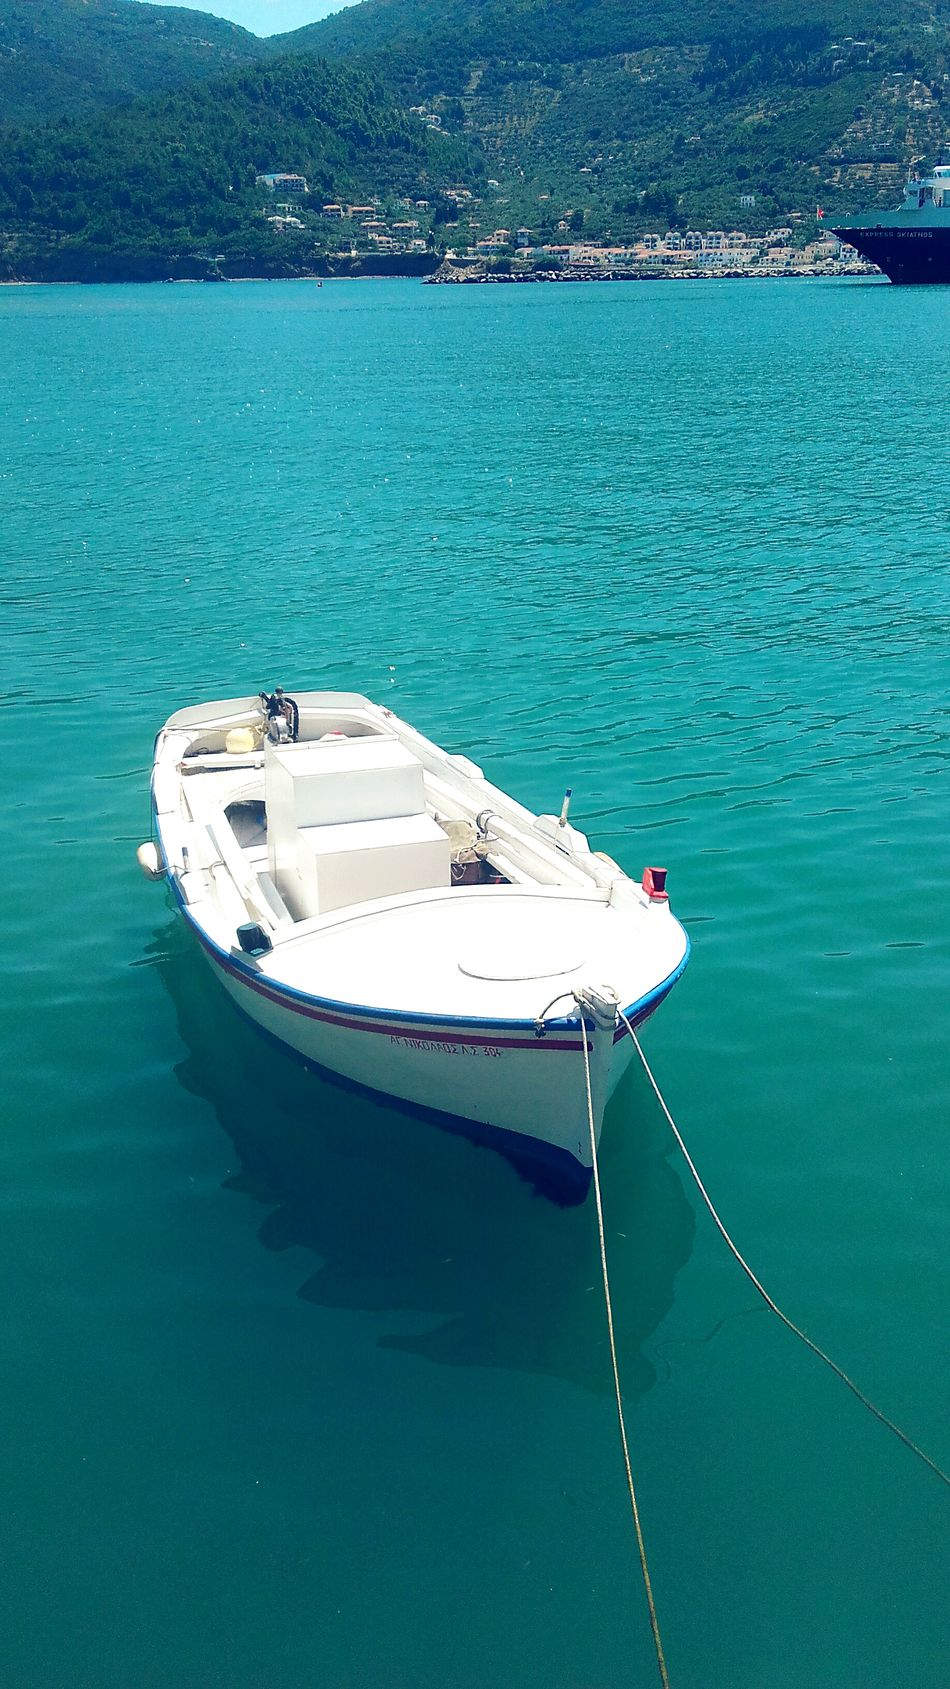 Taking Photos Boat Enjoying Life Fresh Relaxing Fresh AF White Blue Likeforlike Like4like Skiathosisland Skiathos Greek Boat Skiathos_island Greece Blue And White Water Reflections Water Waves Boats Sea Sea View Sea And Sky Detail